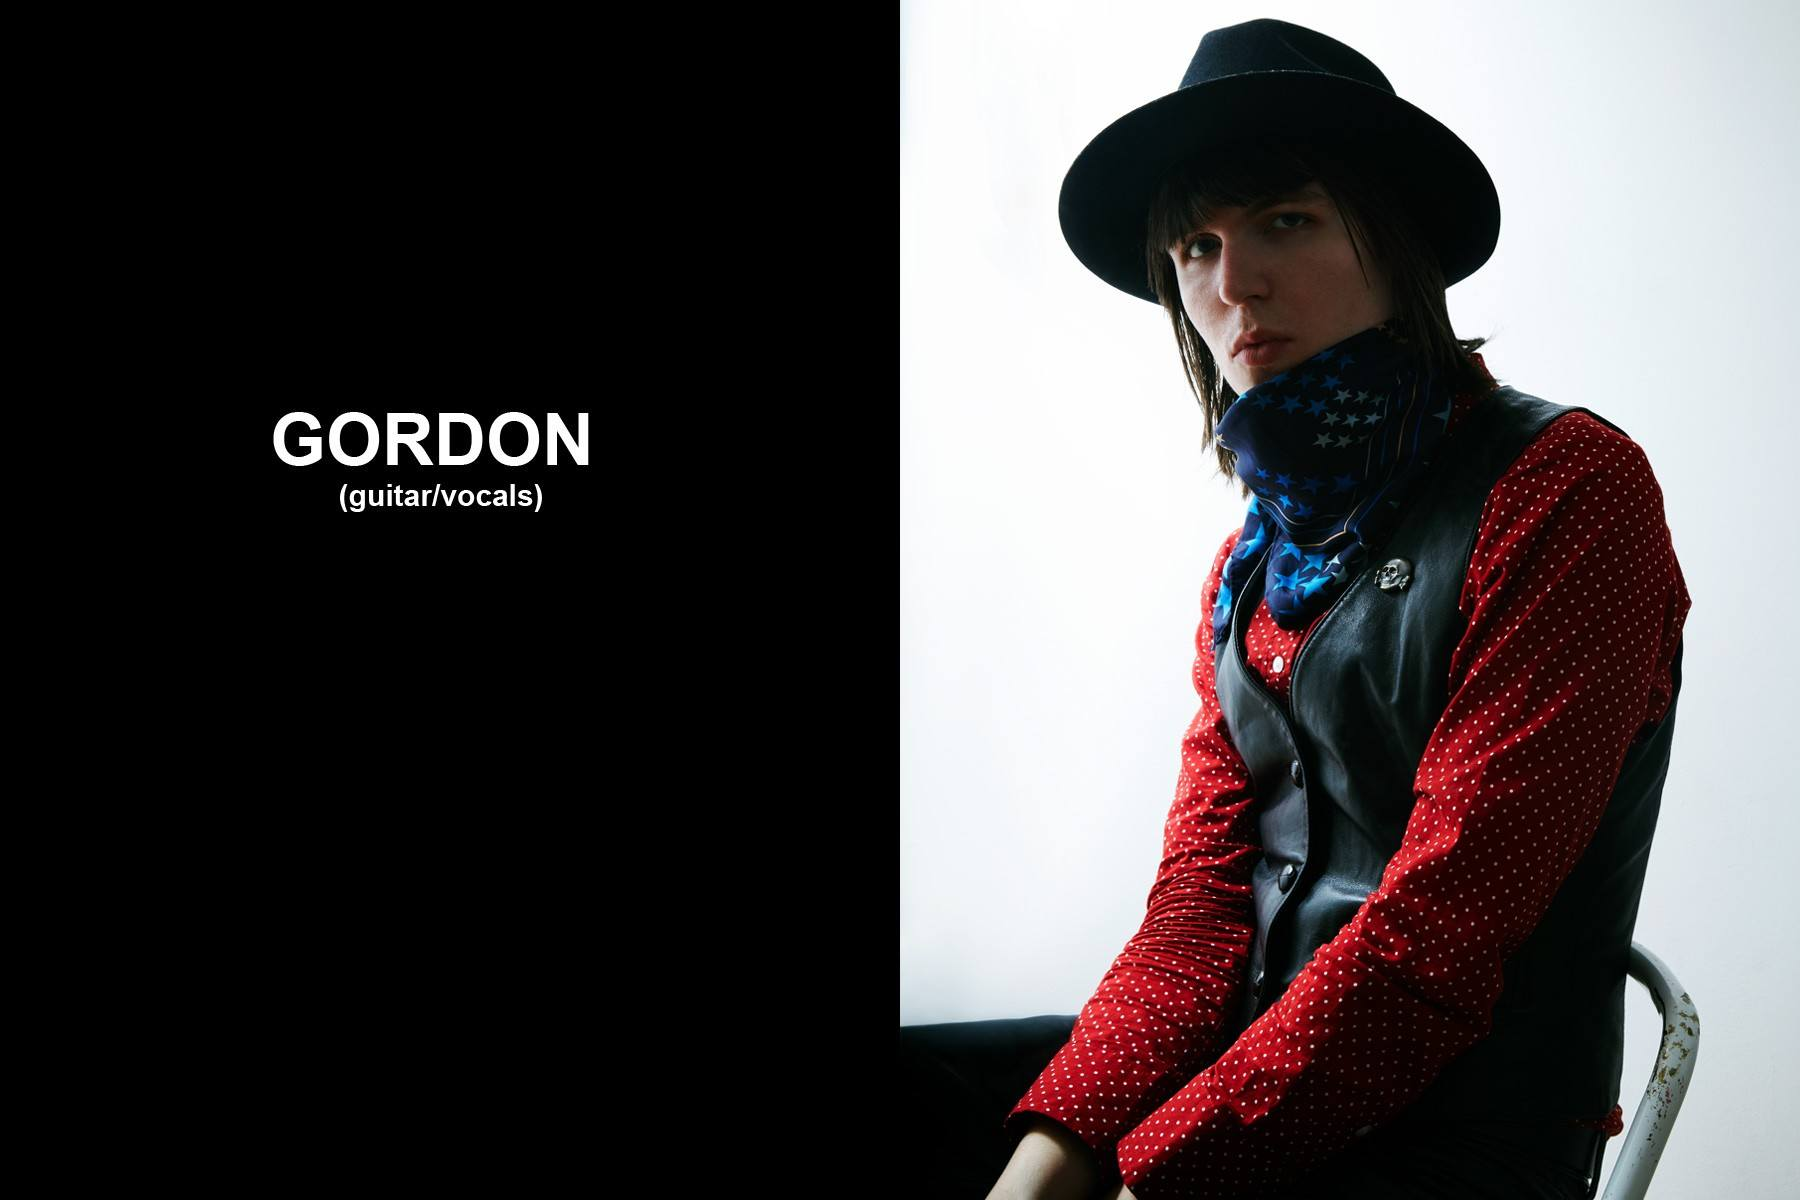 Gordon Lawrence, guitar/vocals, Beechwood band. Photographed by Alexander Thompson for Ponyboy magazine.